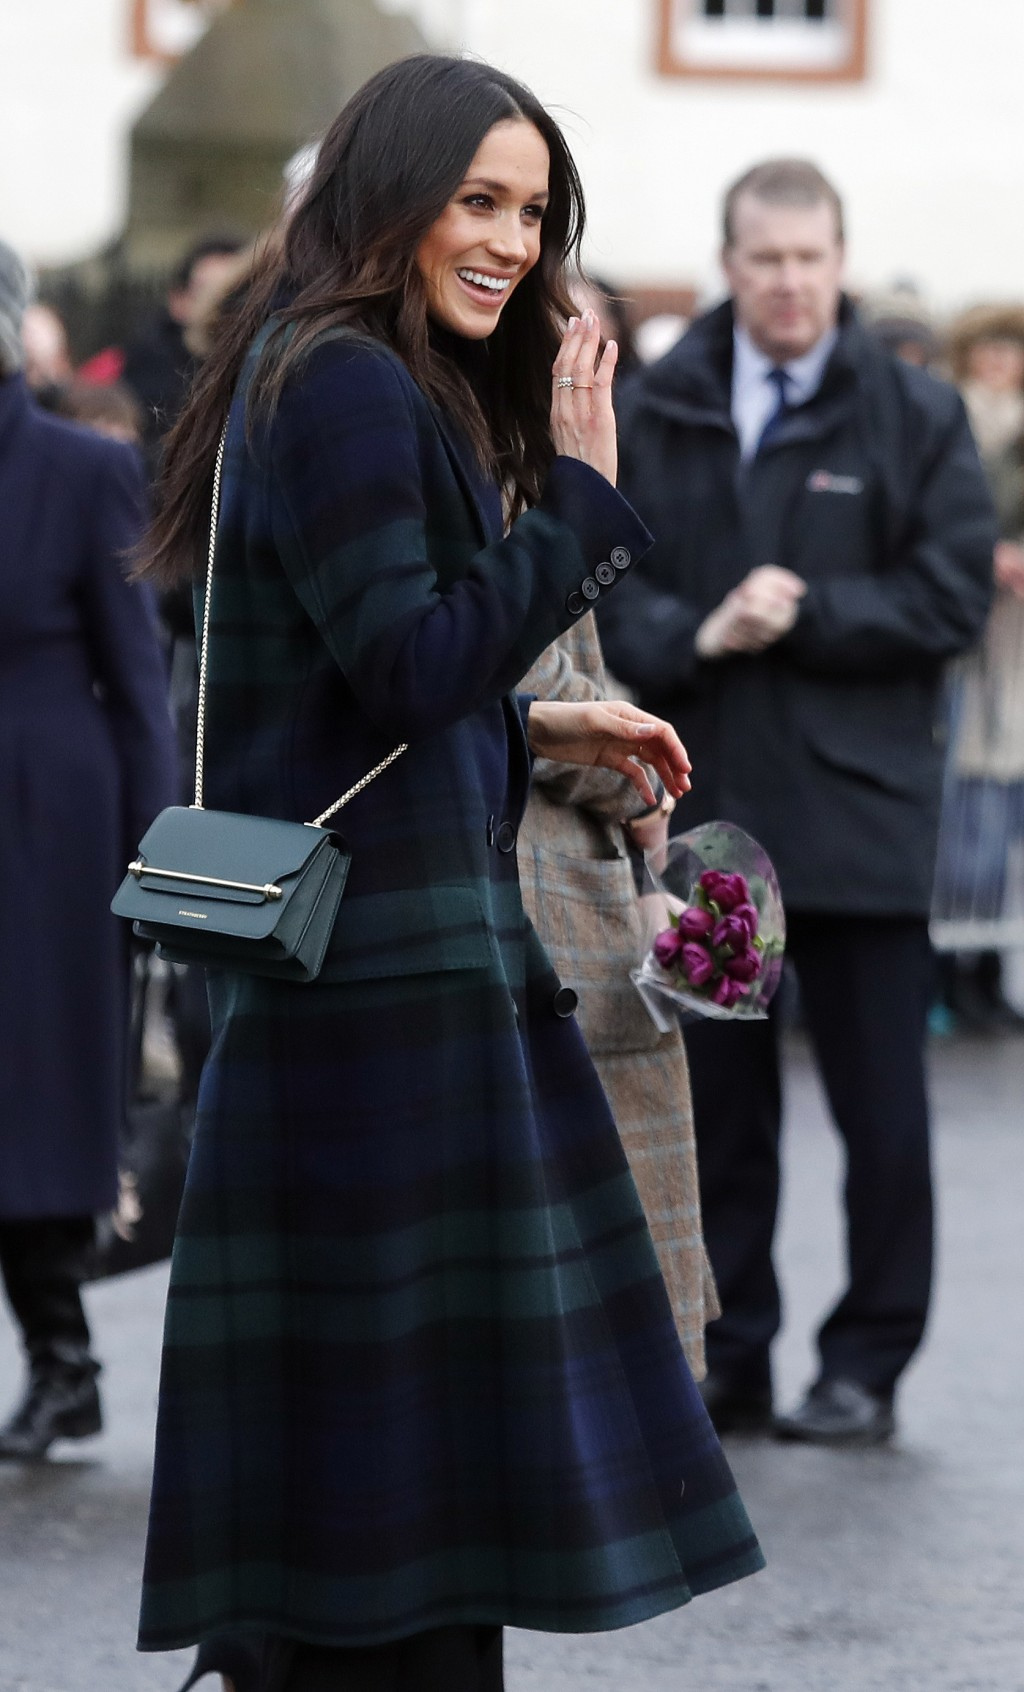 Meghan Markle fiancee of Britain's Prince Harry arrives at Edinburgh Castle in Edinburgh, Scotland, Tuesday, Feb. 13, 2018. The recently engaged coupl